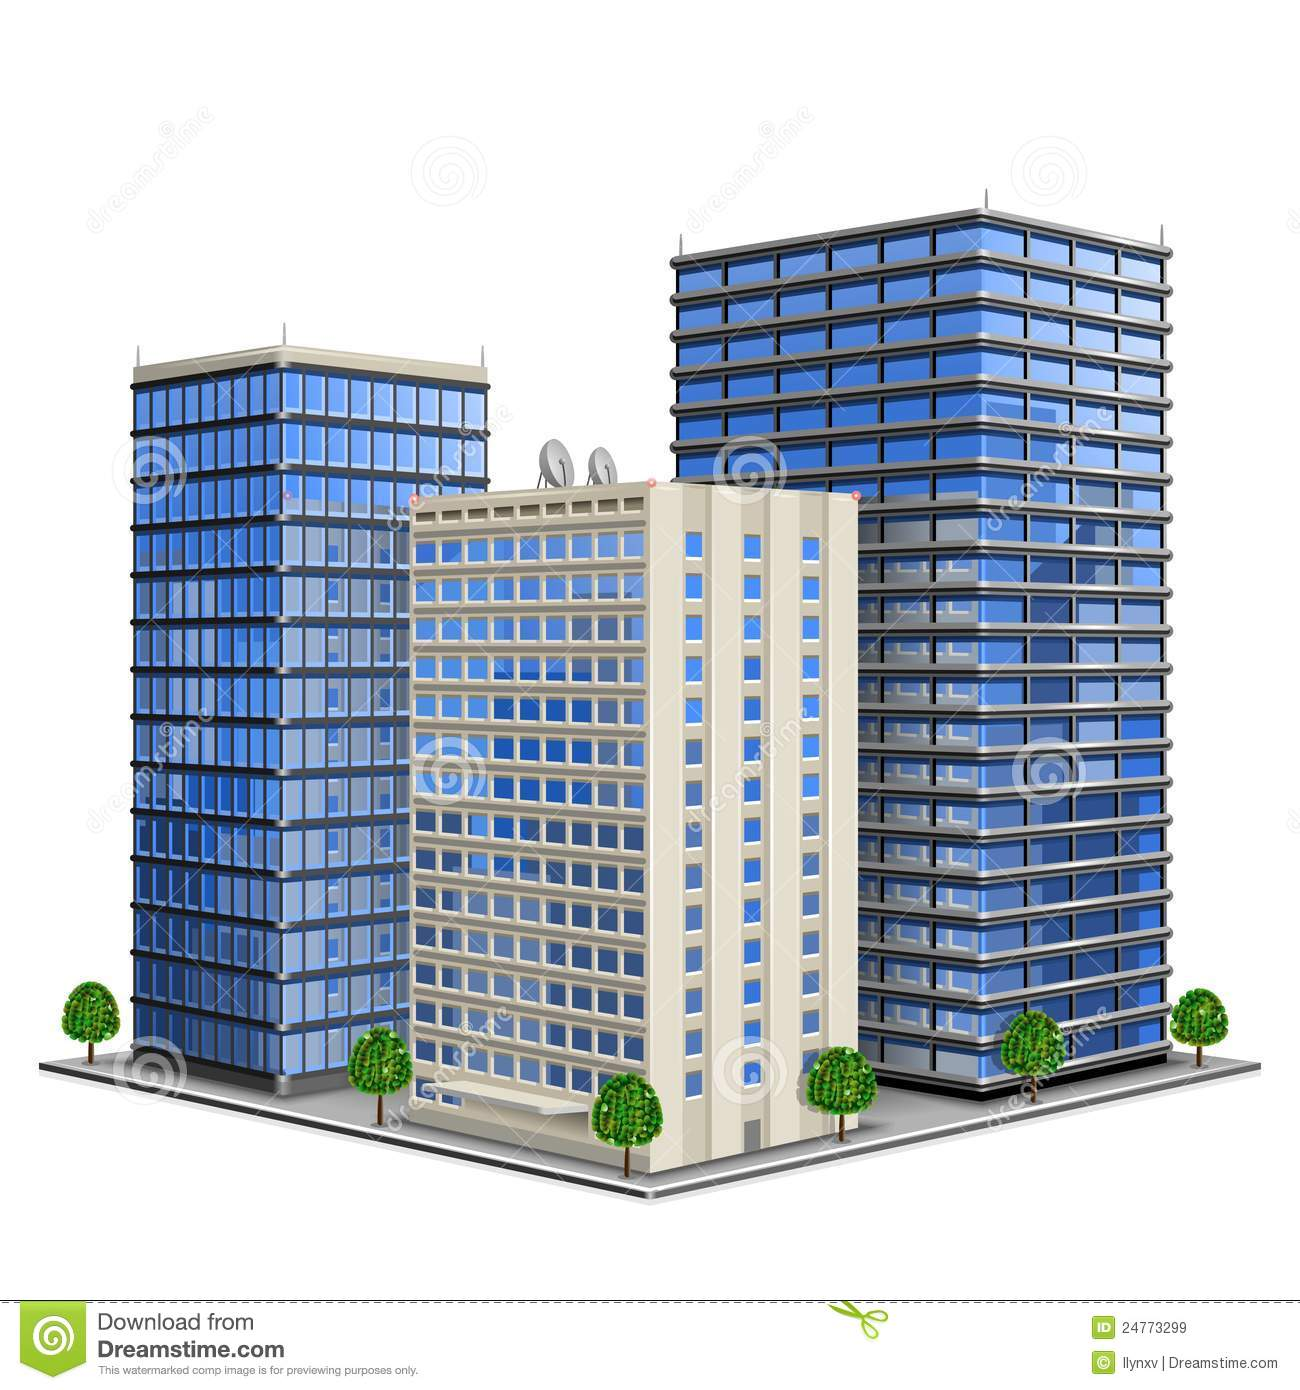 Building clipart: Office Building